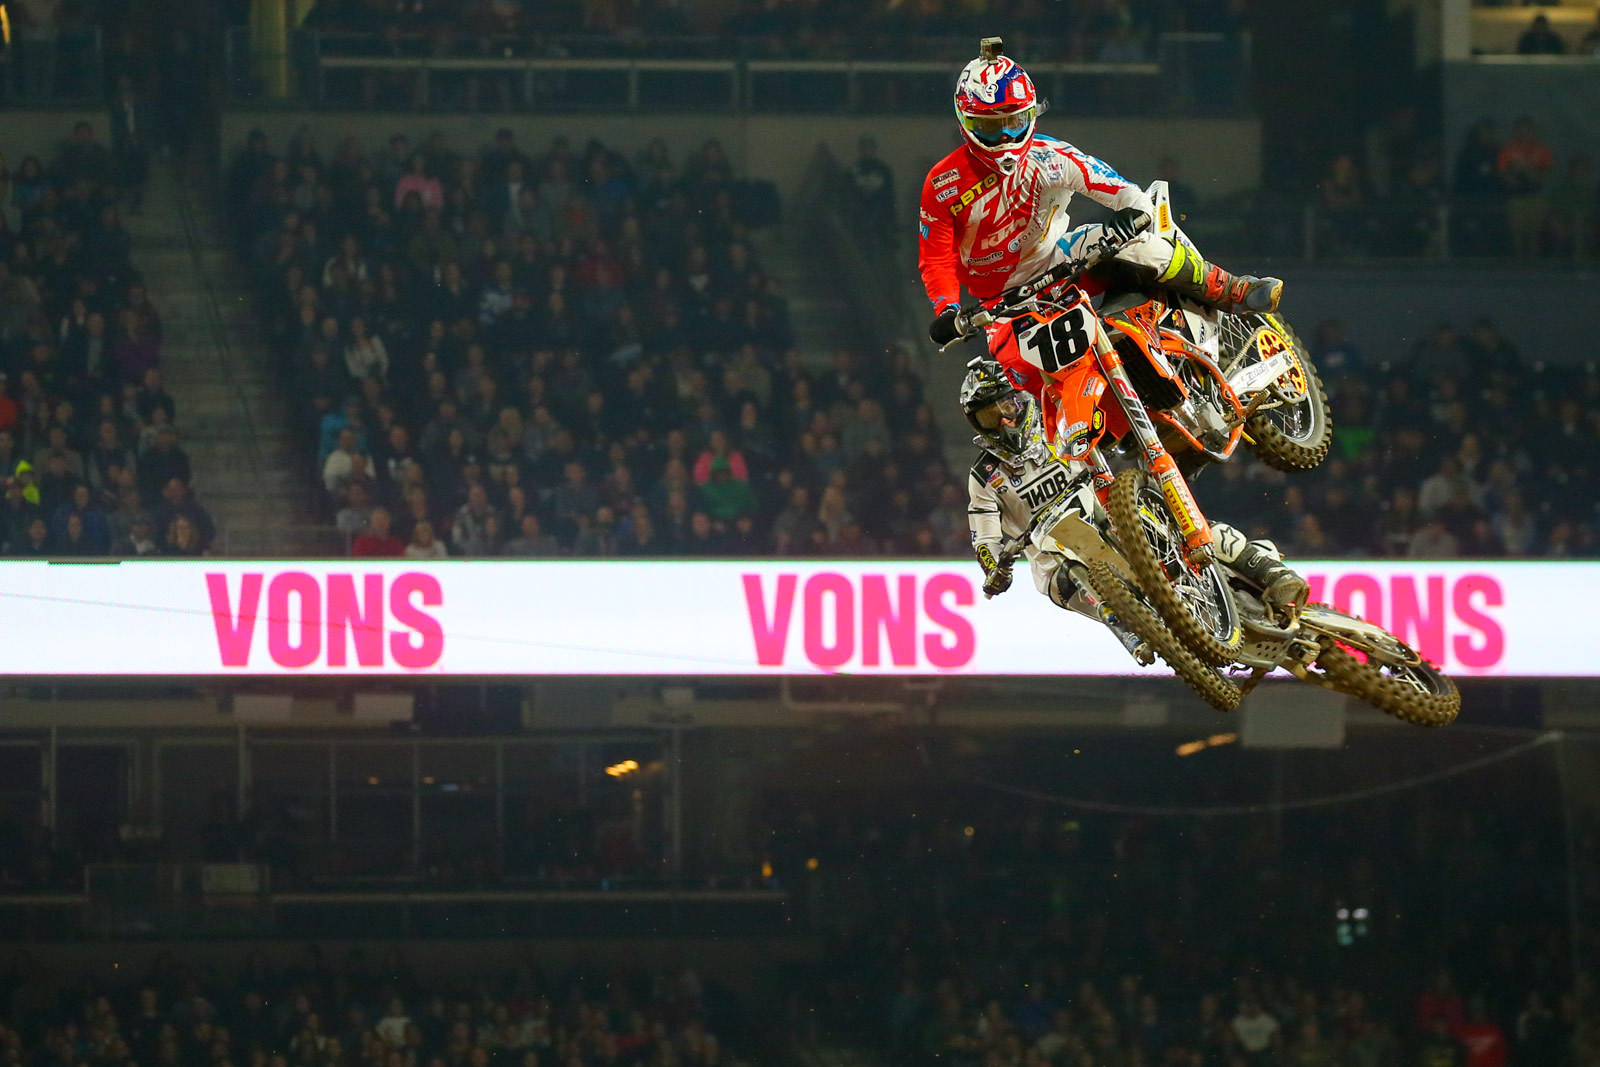 Davi Millsaps and Jason Anderson - Photo Blast: San Diego 2 - Motocross Pictures - Vital MX